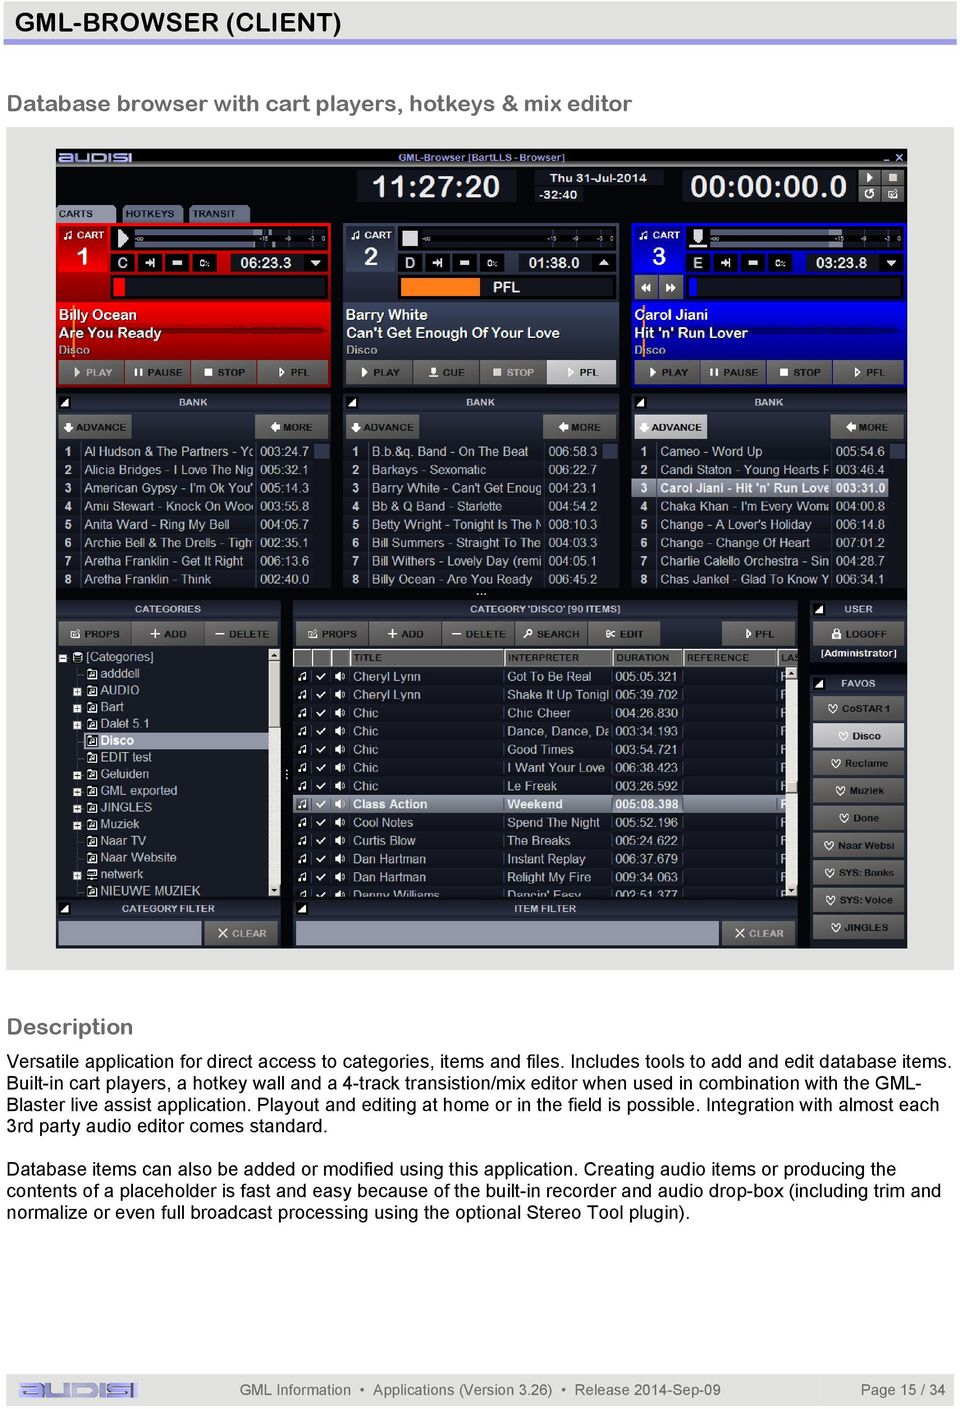 Playout and editing at home or in the field is possible. Integration with almost each 3rd party audio editor comes standard. Database items can also be added or modified using this application.